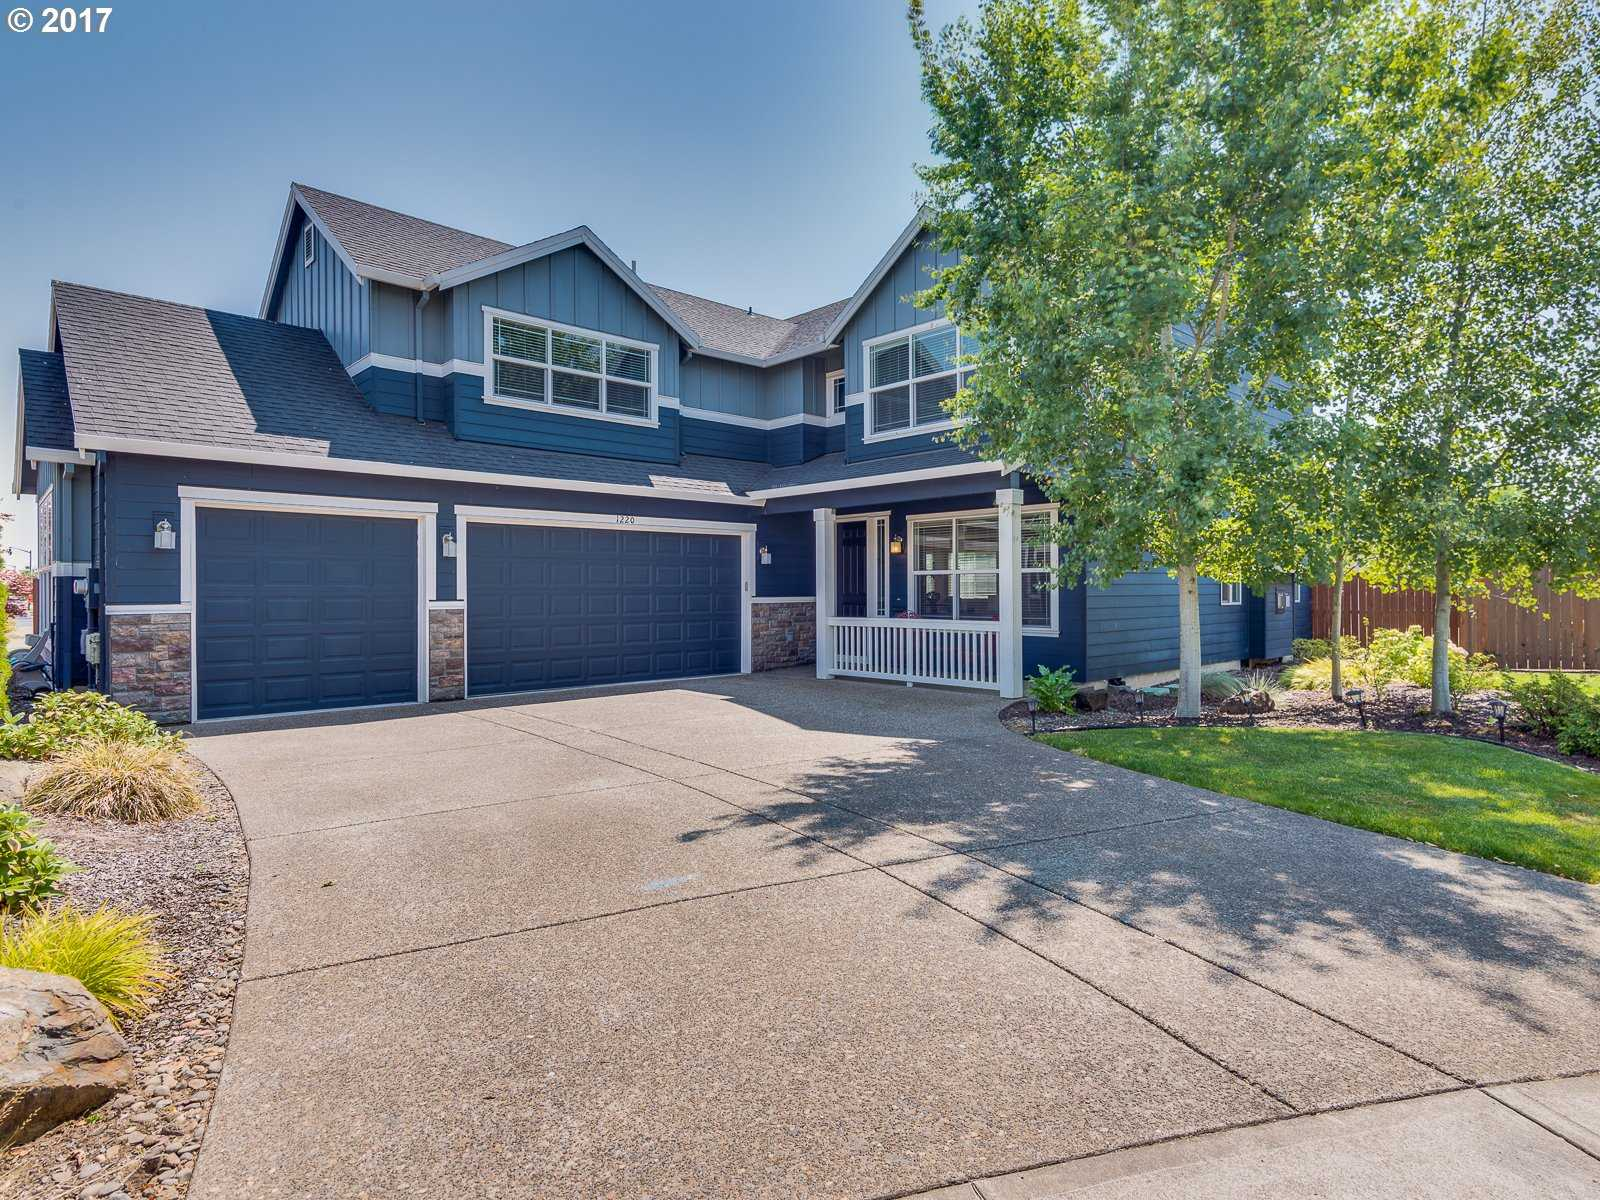 $474,900 - 5Br/3Ba -  for Sale in Parks At Forest Grove, Forest Grove